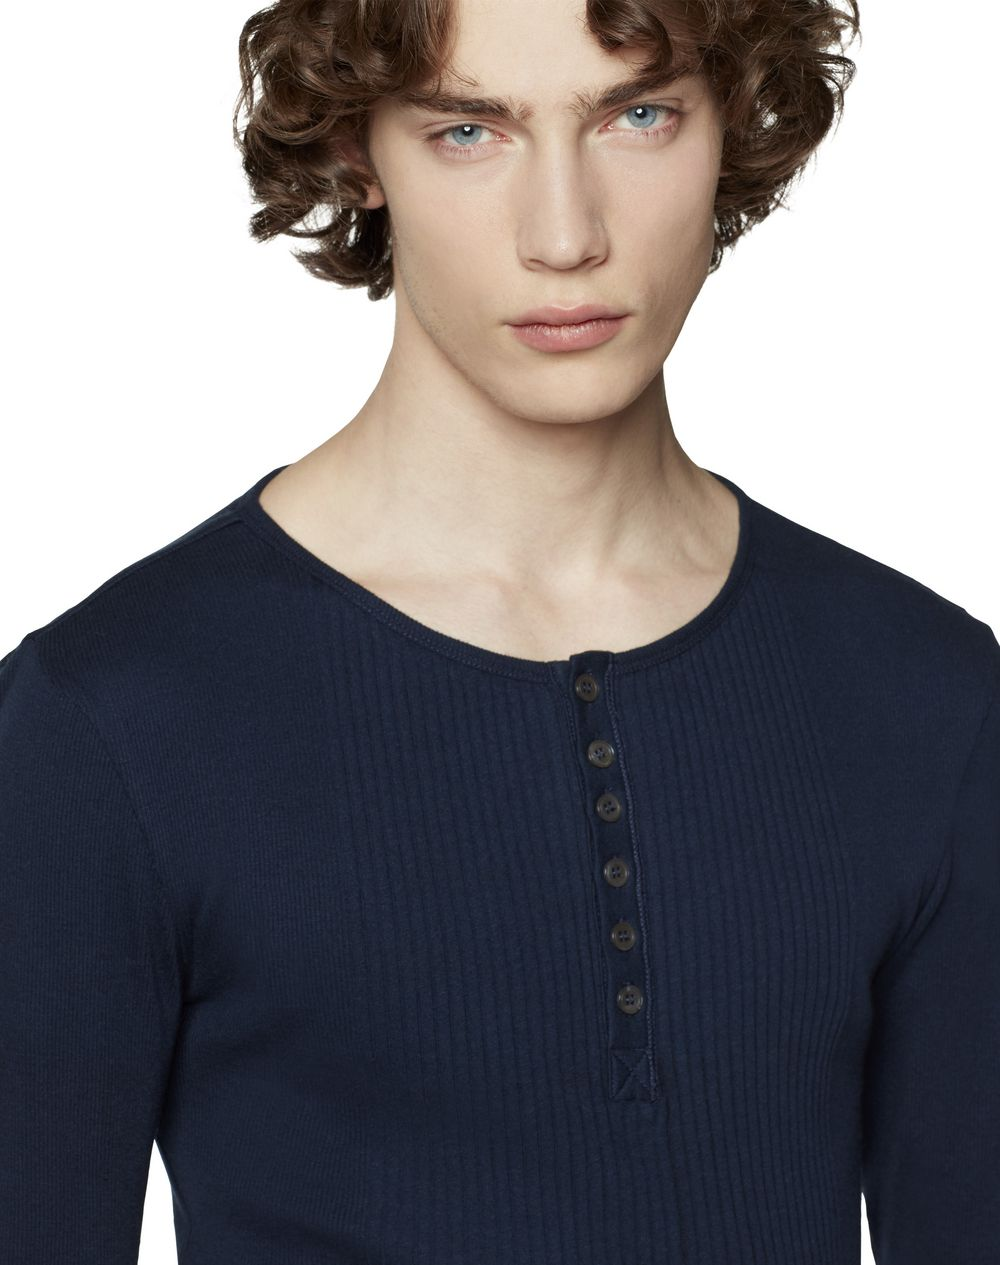 LONG-SLEEVED CASHMERE AND COTTON T-SHIRT - Lanvin